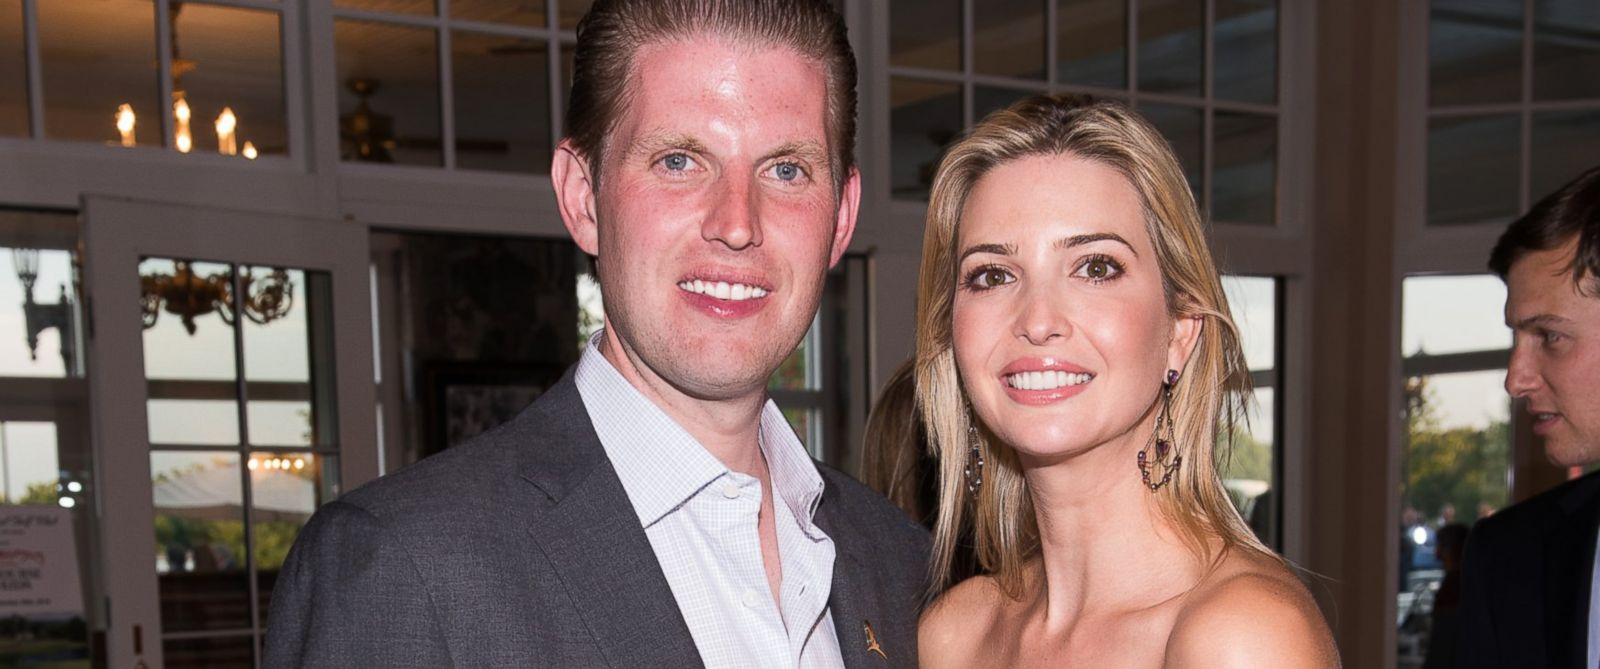 Donald Trump's Kids Eric and Ivanka Miss Deadline to Vote ...